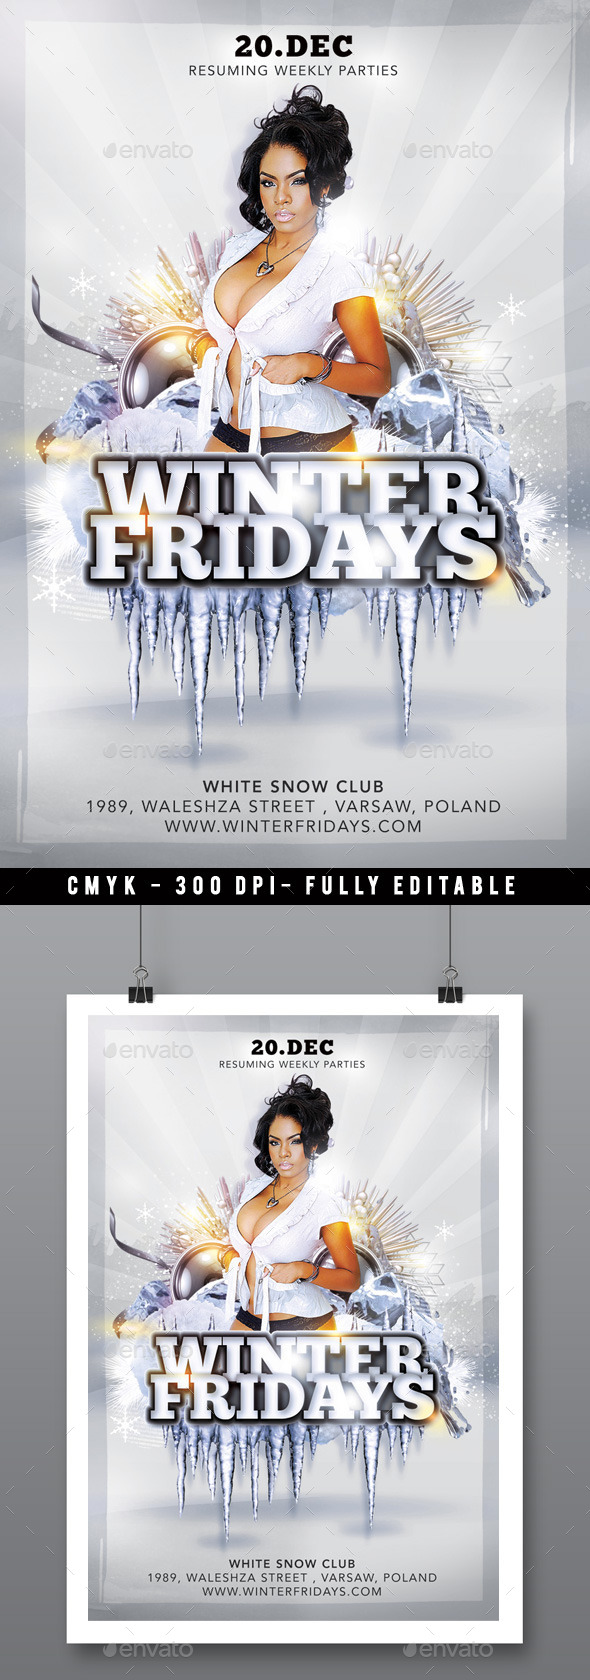 Weekly Fun Winter Friday Party In Club - Clubs & Parties Events